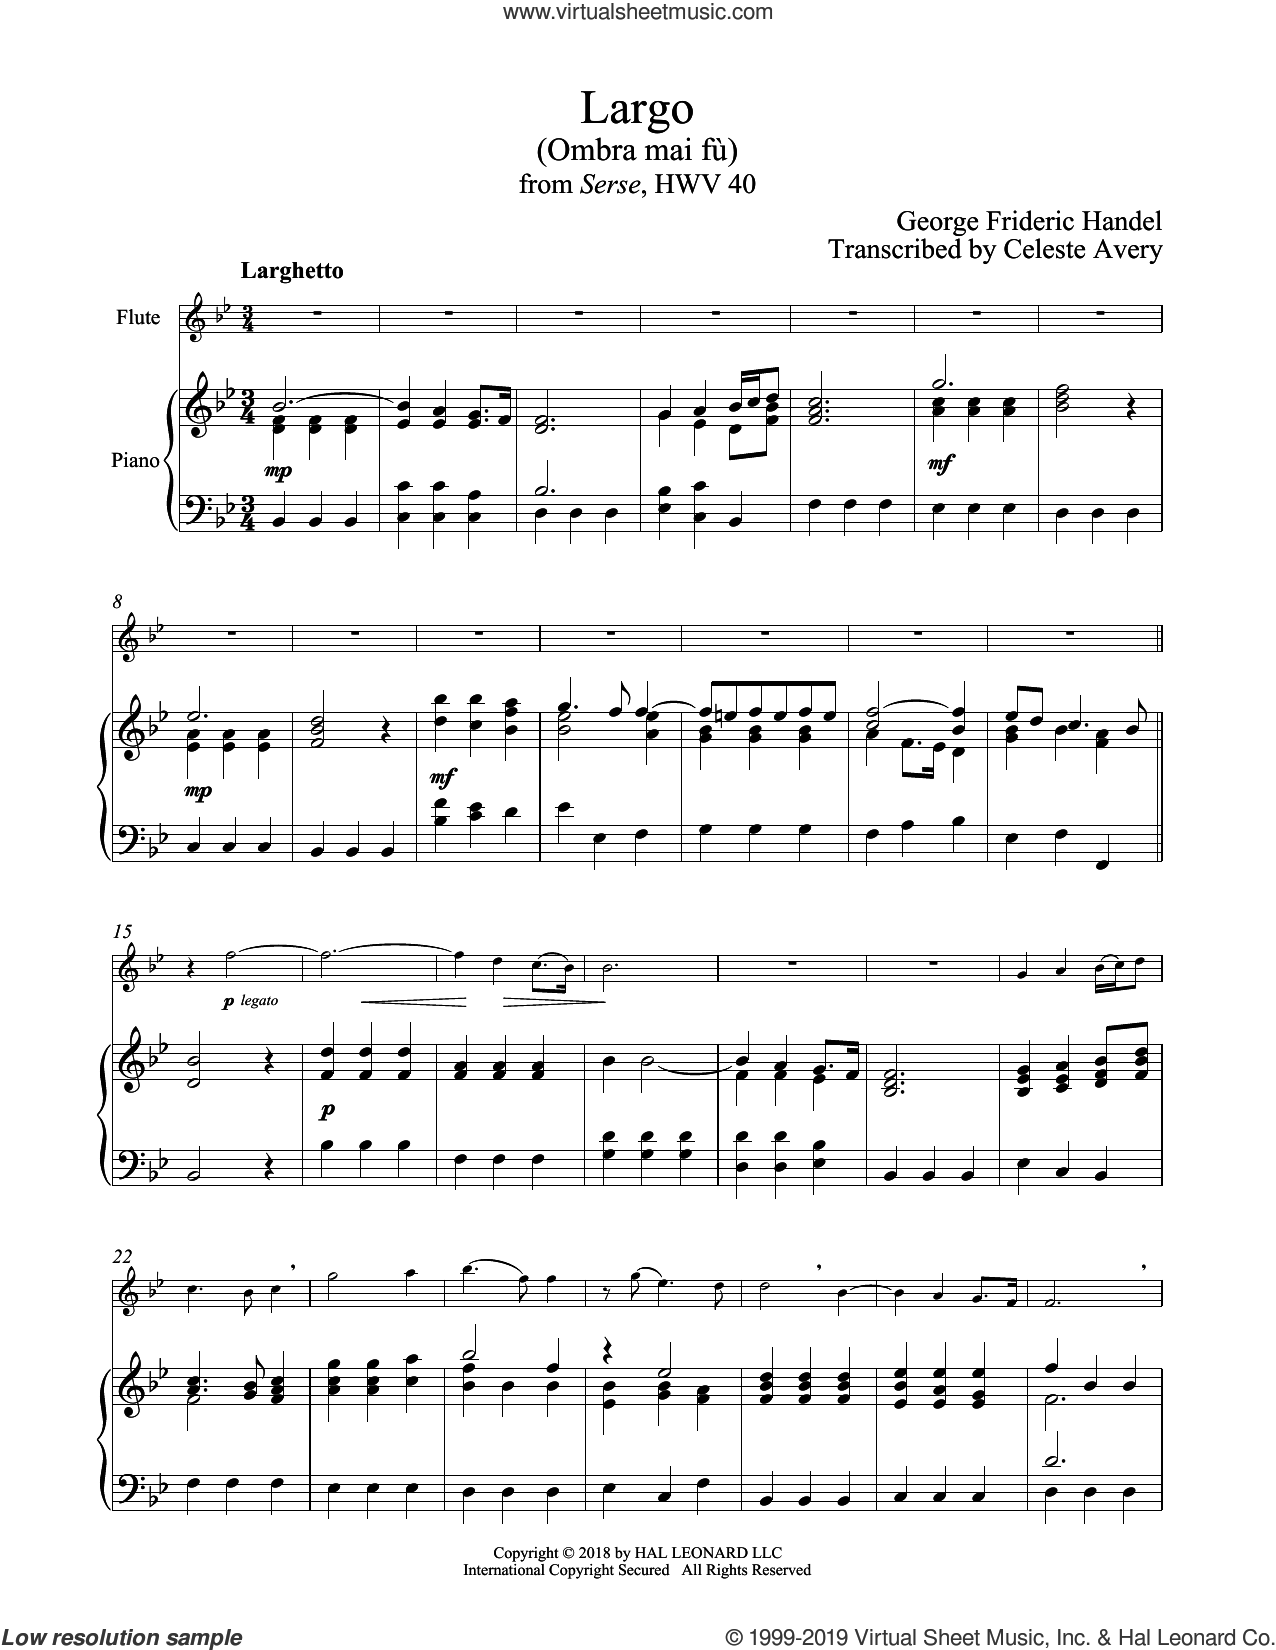 Ombra Mai Fu sheet music for flute and piano by George Frideric Handel, classical score, intermediate skill level